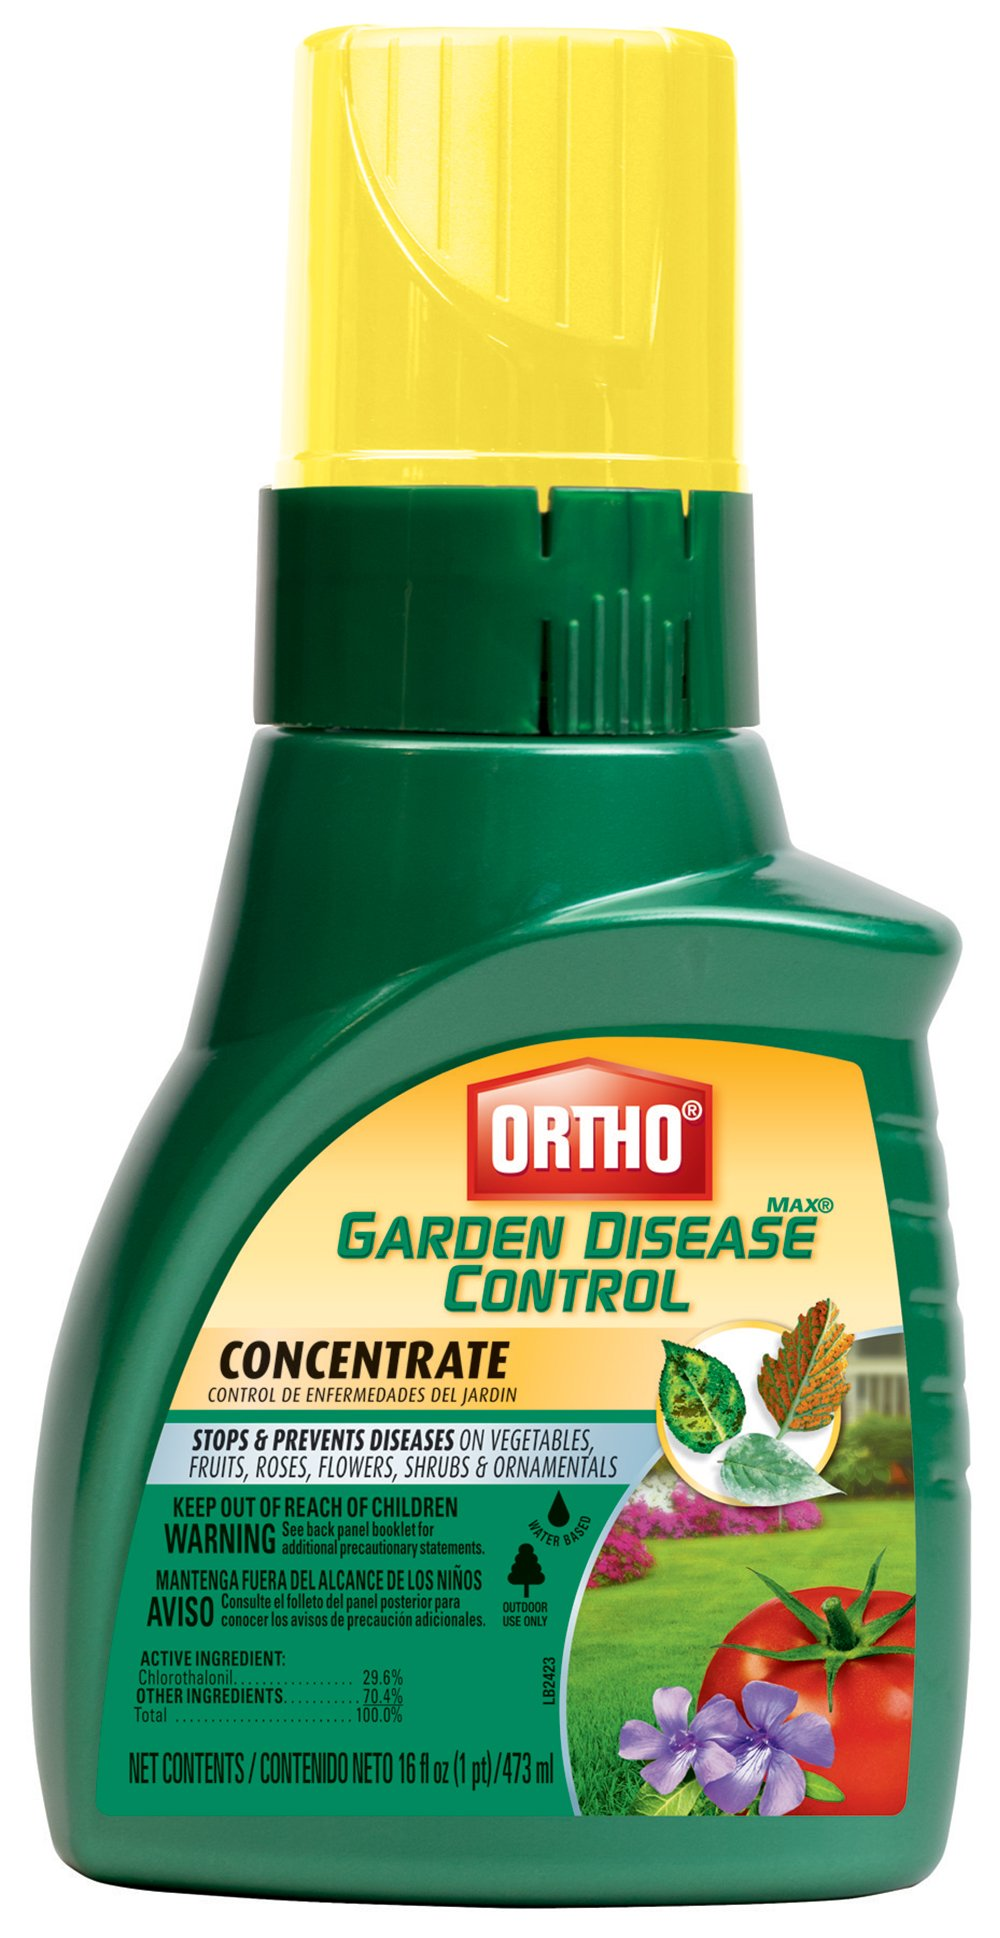 Ortho MAX Garden Disease Control Concentrate by Scotts